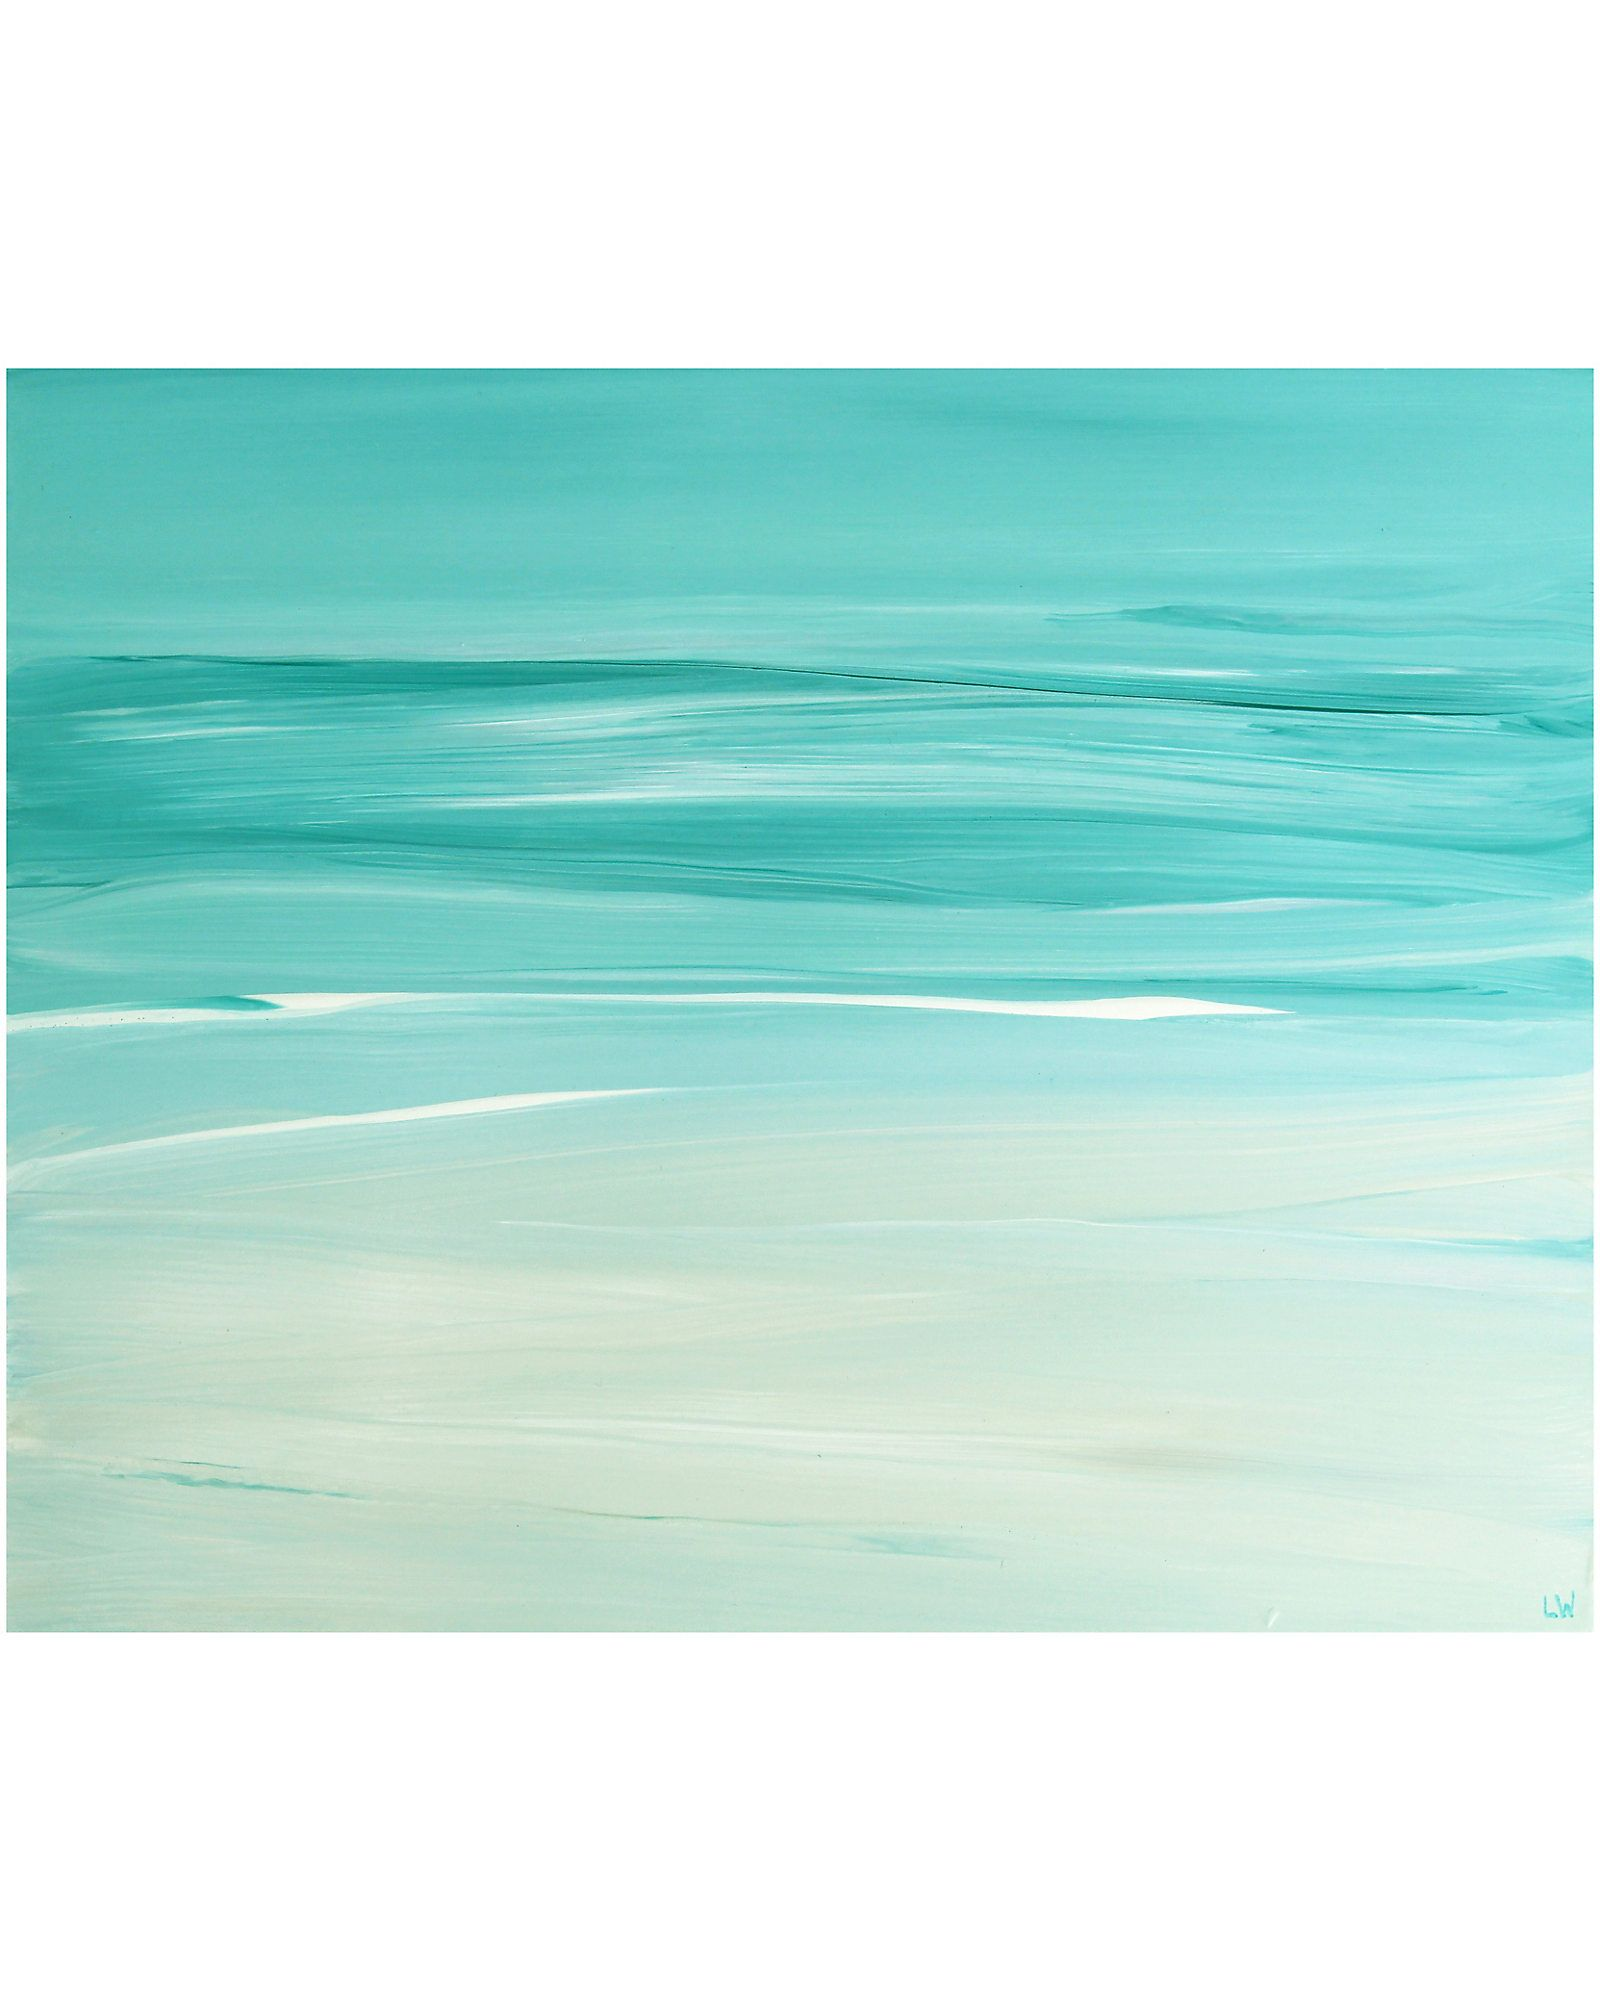 """Ocean Memories 8"" by Laurie Winthers""Ocean Memories 8"" by Laurie Winthers"